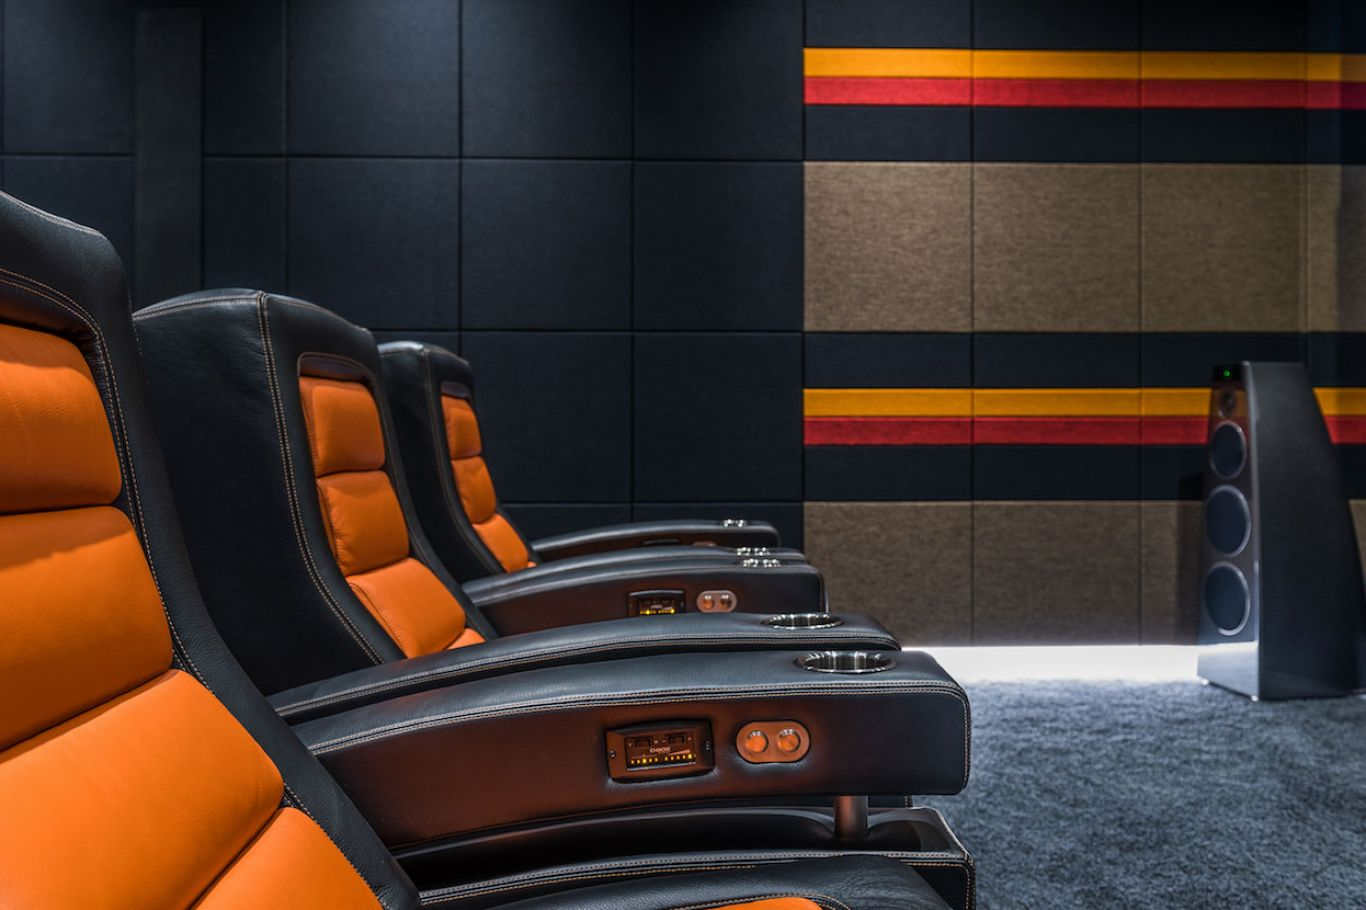 High end, delux home cinema chairs